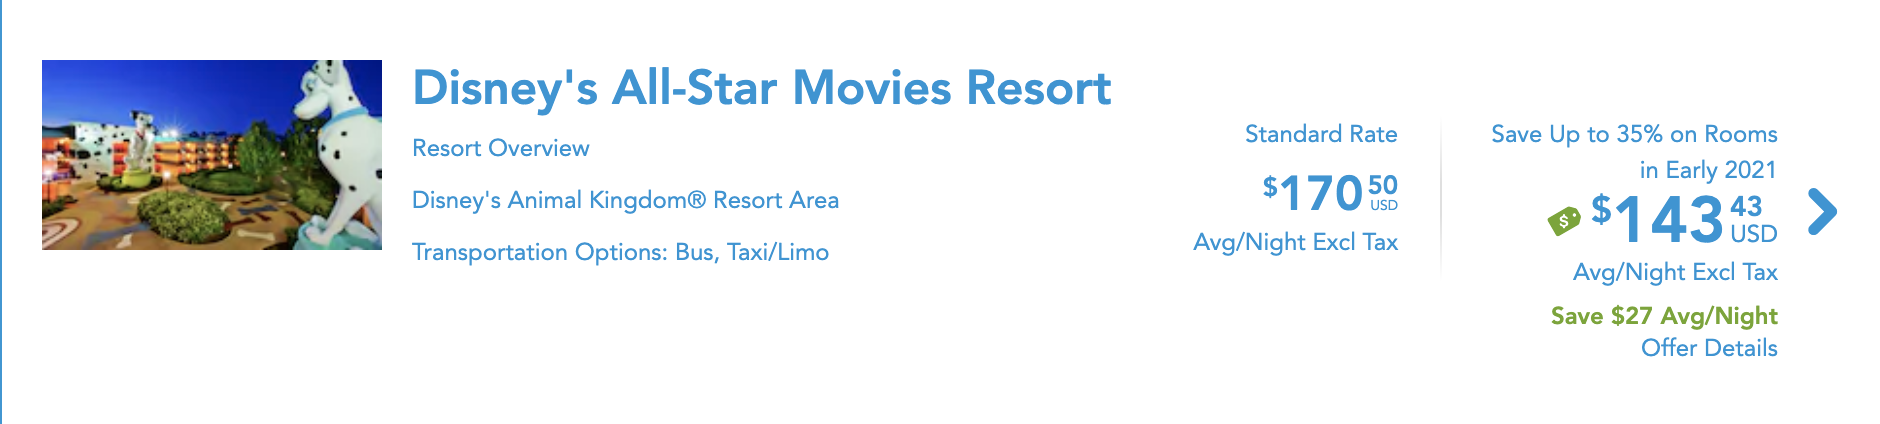 Disney's All-Star Resort 2021